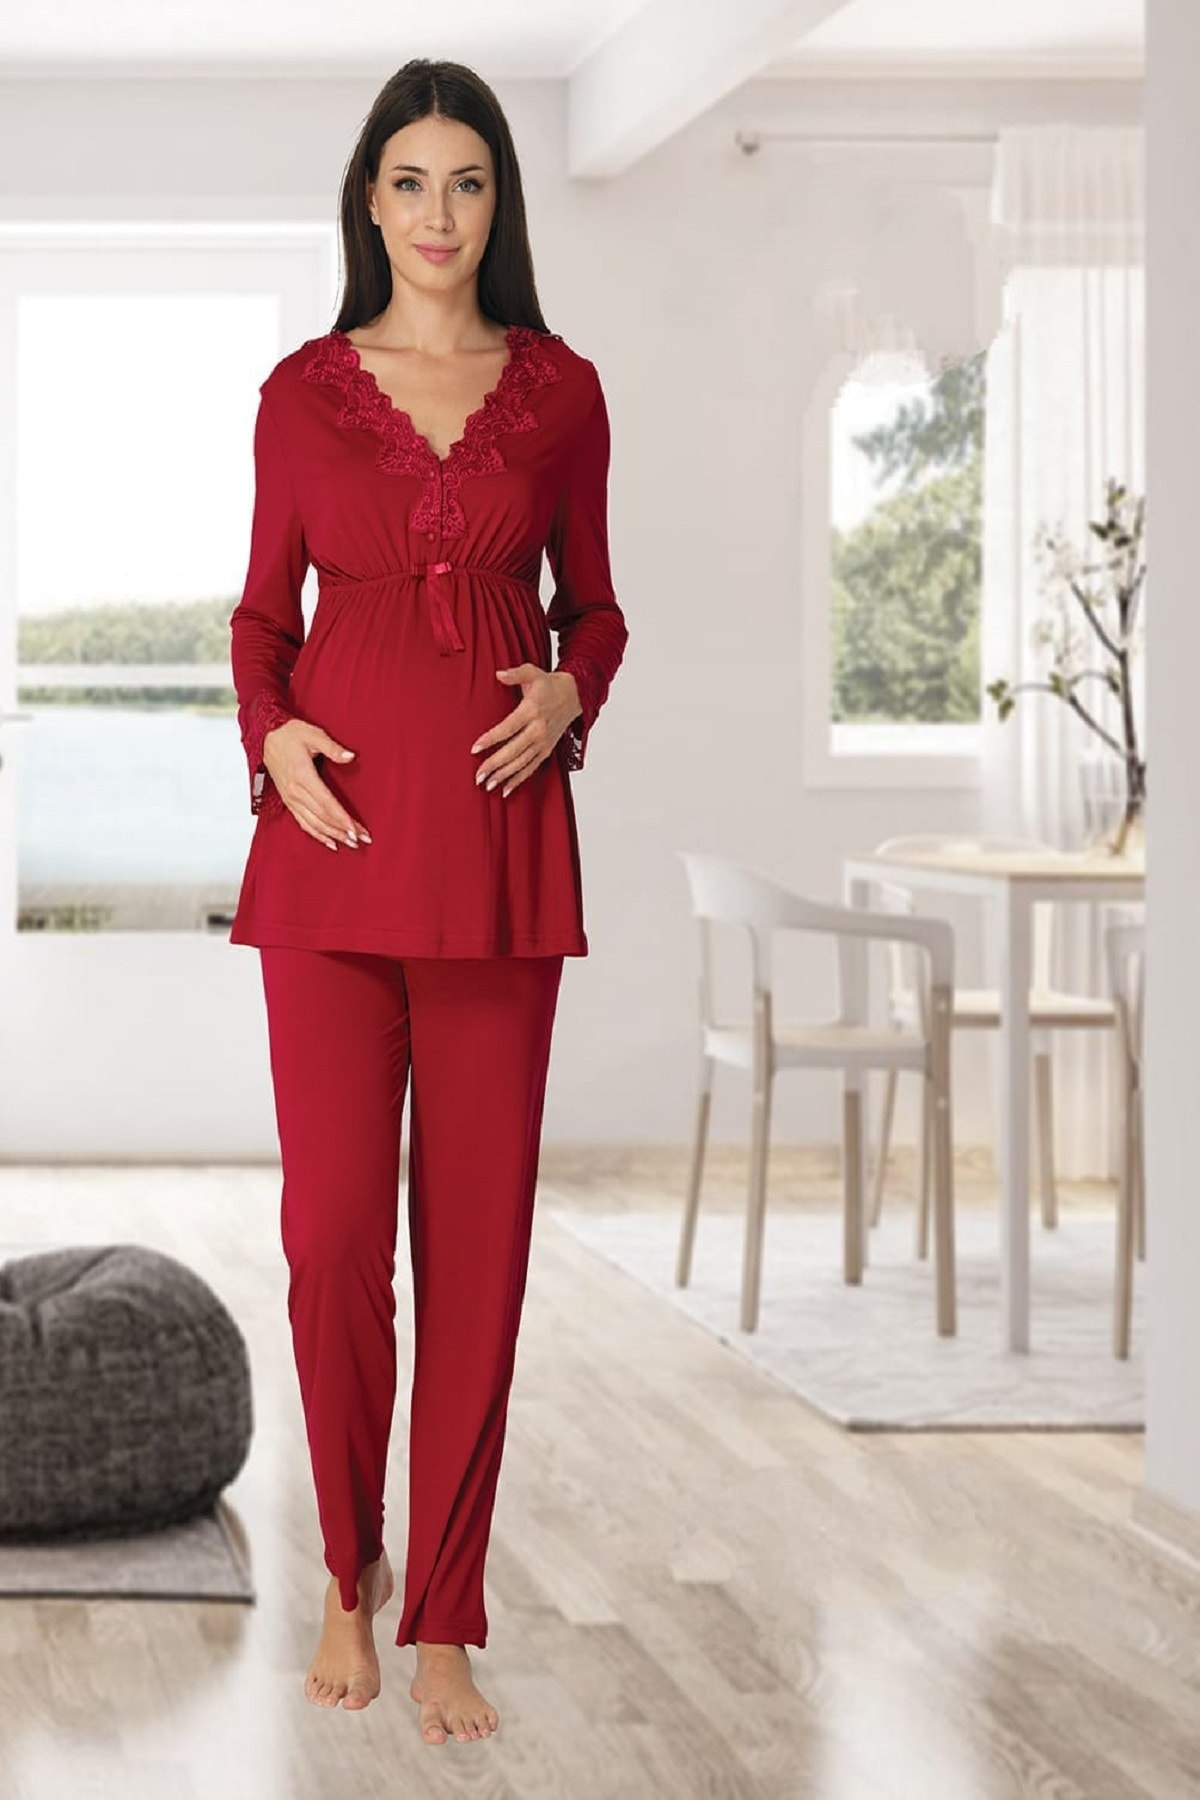 Women's Cherry Long-Sleeve Pajamas Set Nightgown Dressing Gown Puerperal Maternity 4'lü Set enlarge